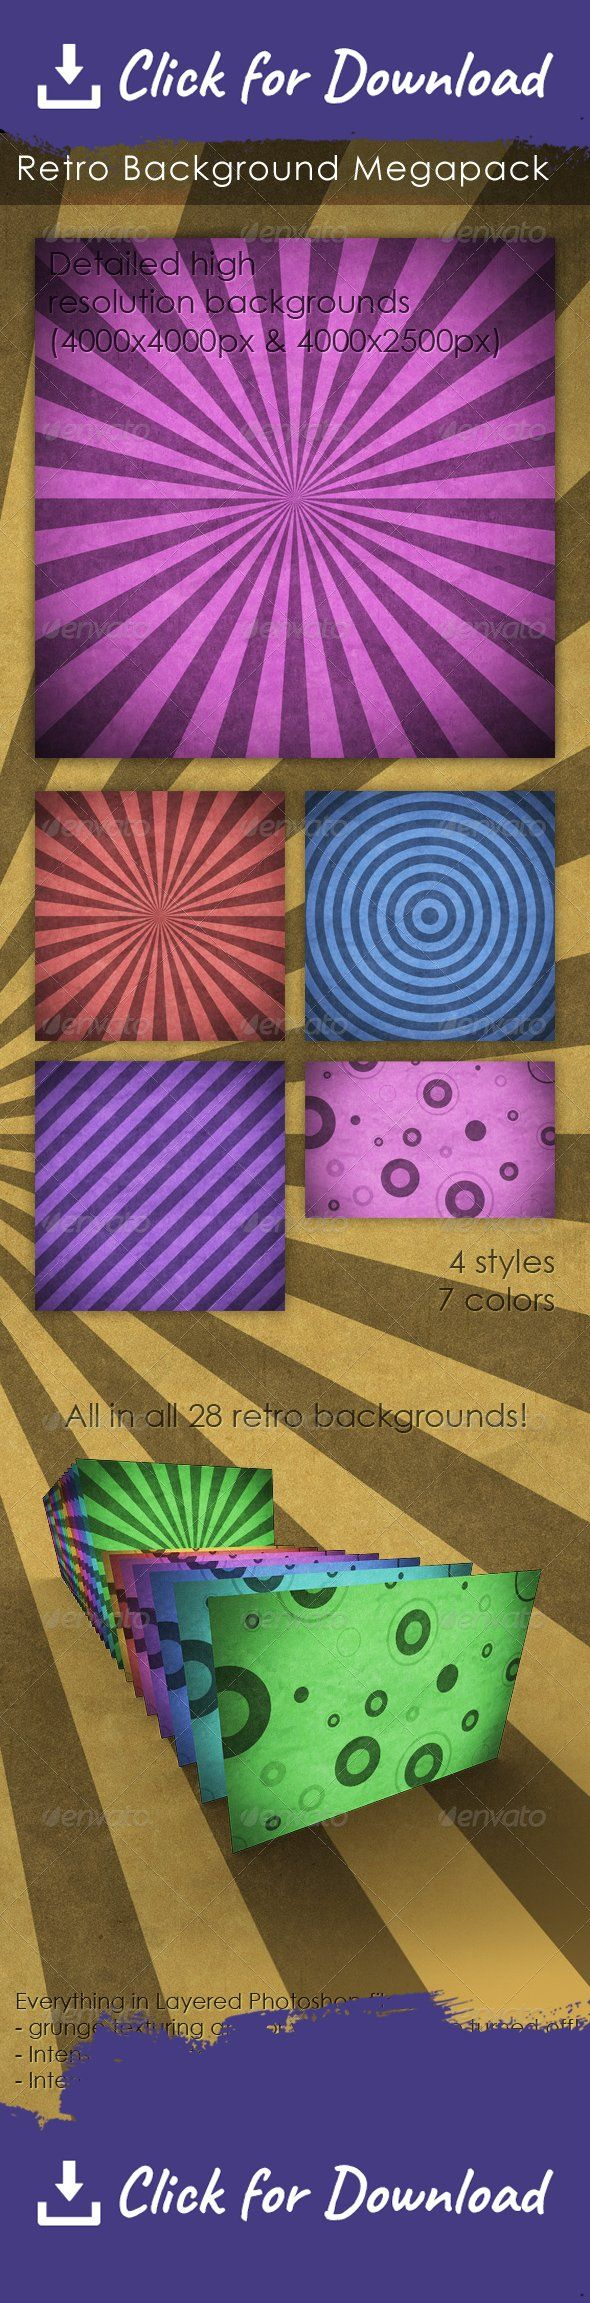 antique, background, burst, grunge, grunge background, rays, retro, retro background, starburst, stripes, sunburst, texture, twitter, vintage, vintage background Retro / Vintage Background - High resolution Photoshop files (4000×4000px & 4000×2500px) - Layered editable files let you adjust the texture and vignette as you like - 4 different styles and 7 different colors - All in all 28 different retro backgrounds!